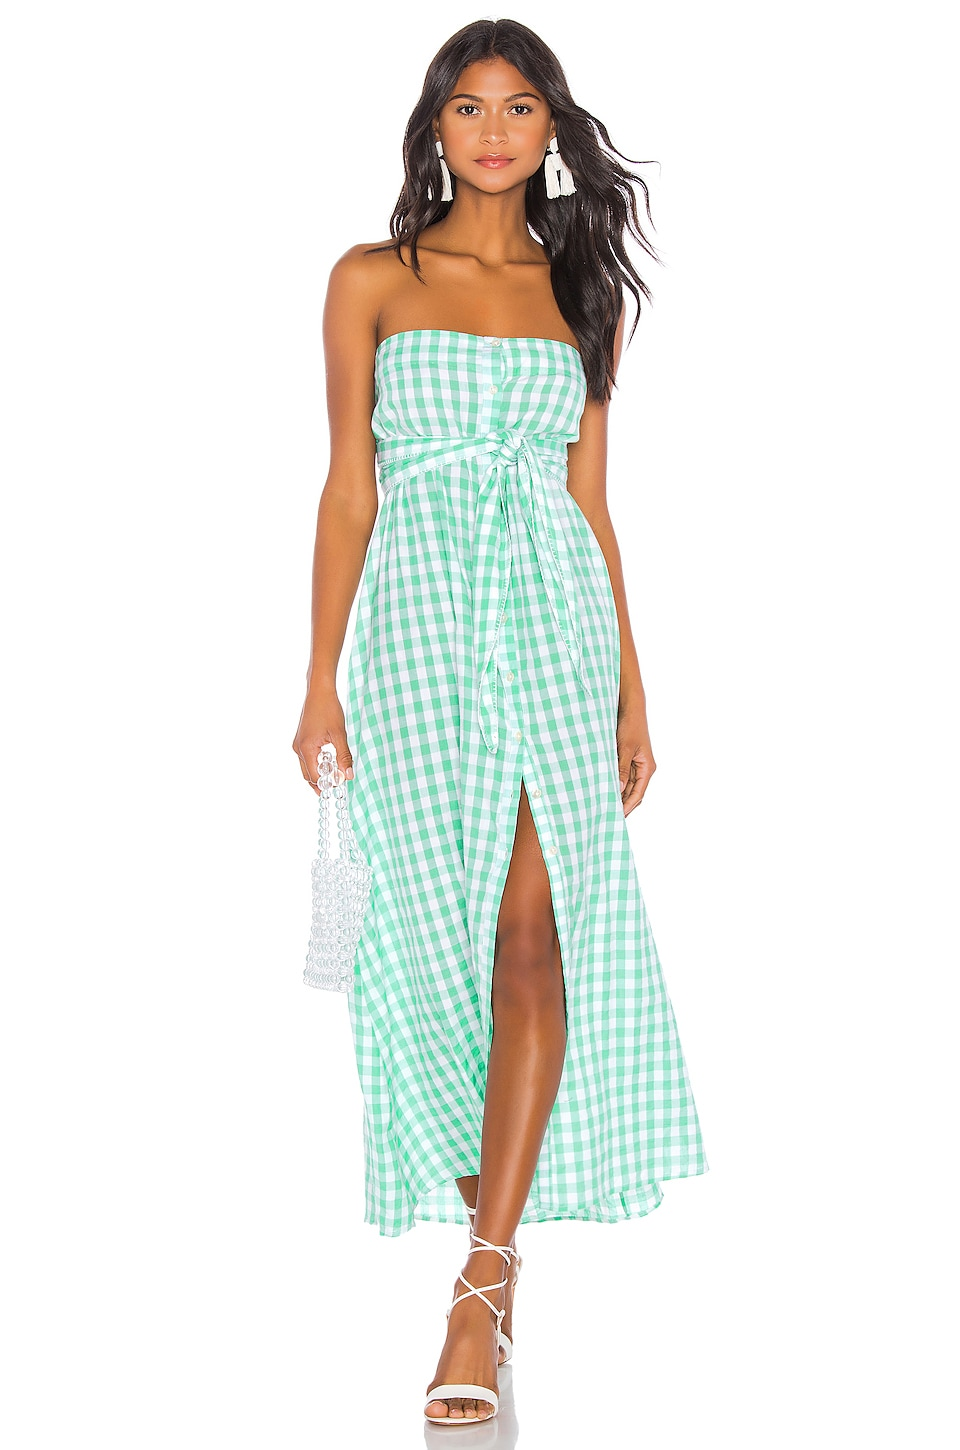 ANAAK Chateau Button Dress in Mint Gingham